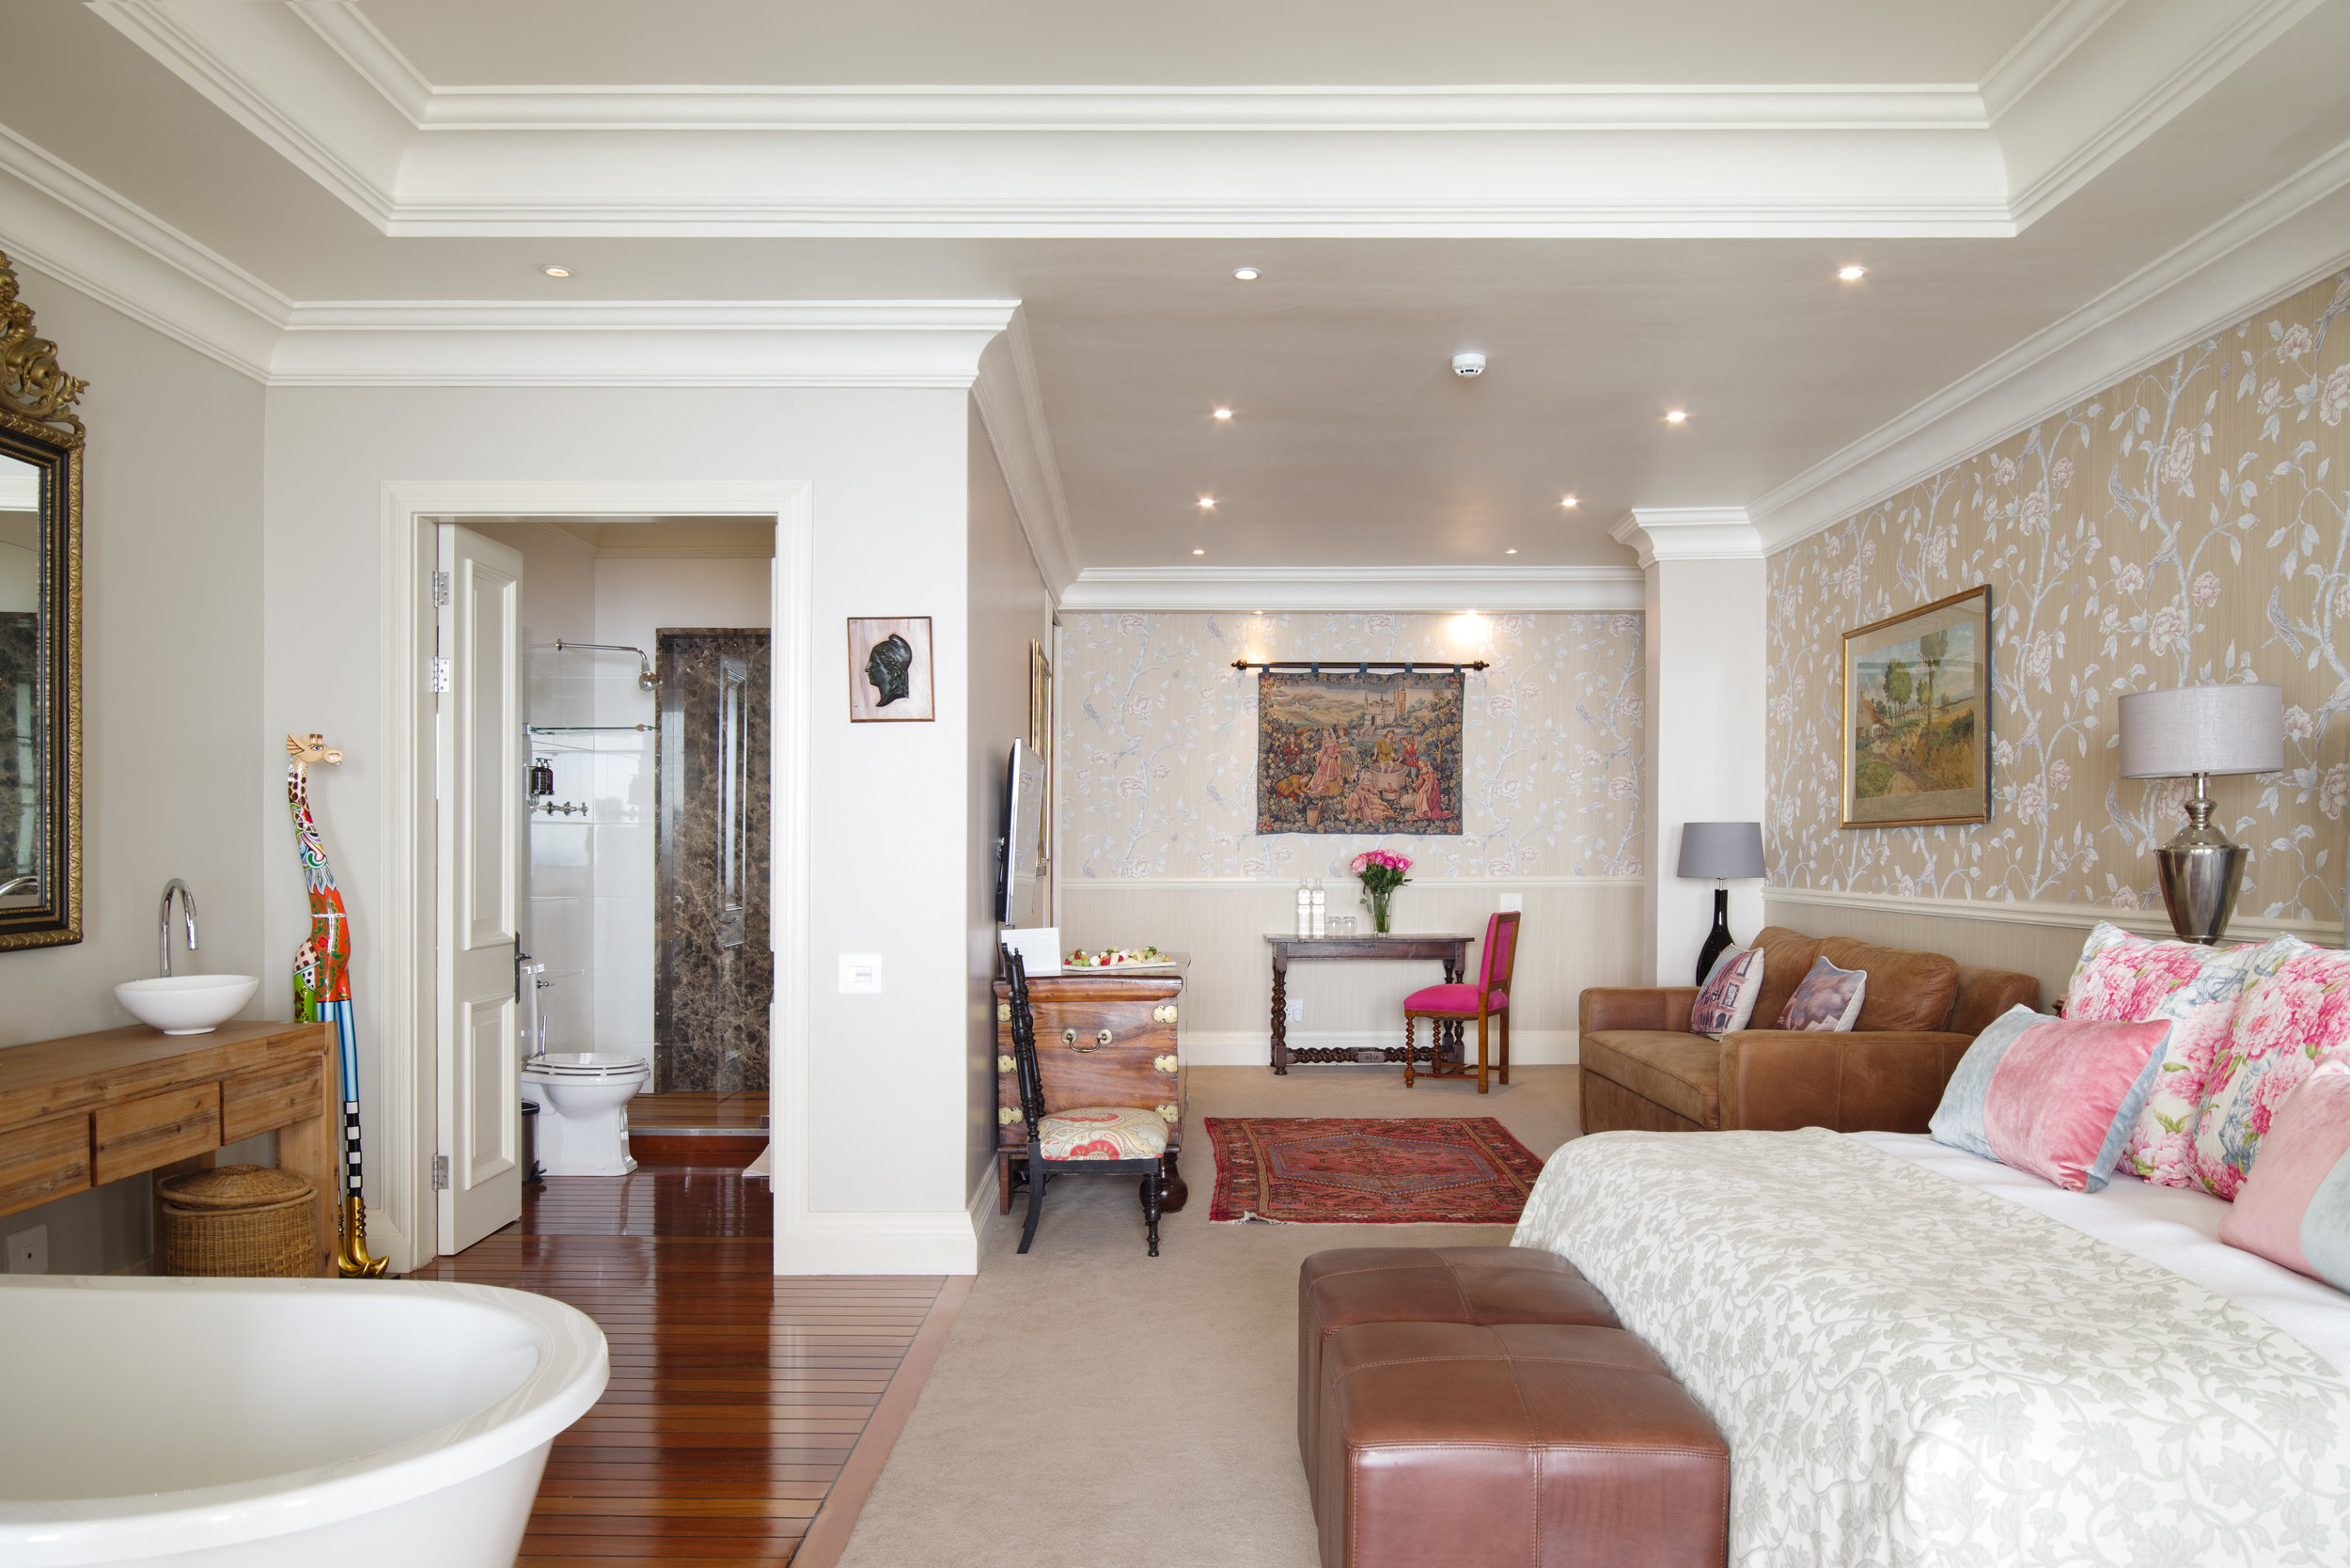 Looking into the Queen Suite at 21Nettleton with a feature bath in the bedroom and separate walk-in shower and WC plus a comfortable sitting area with bespoke art